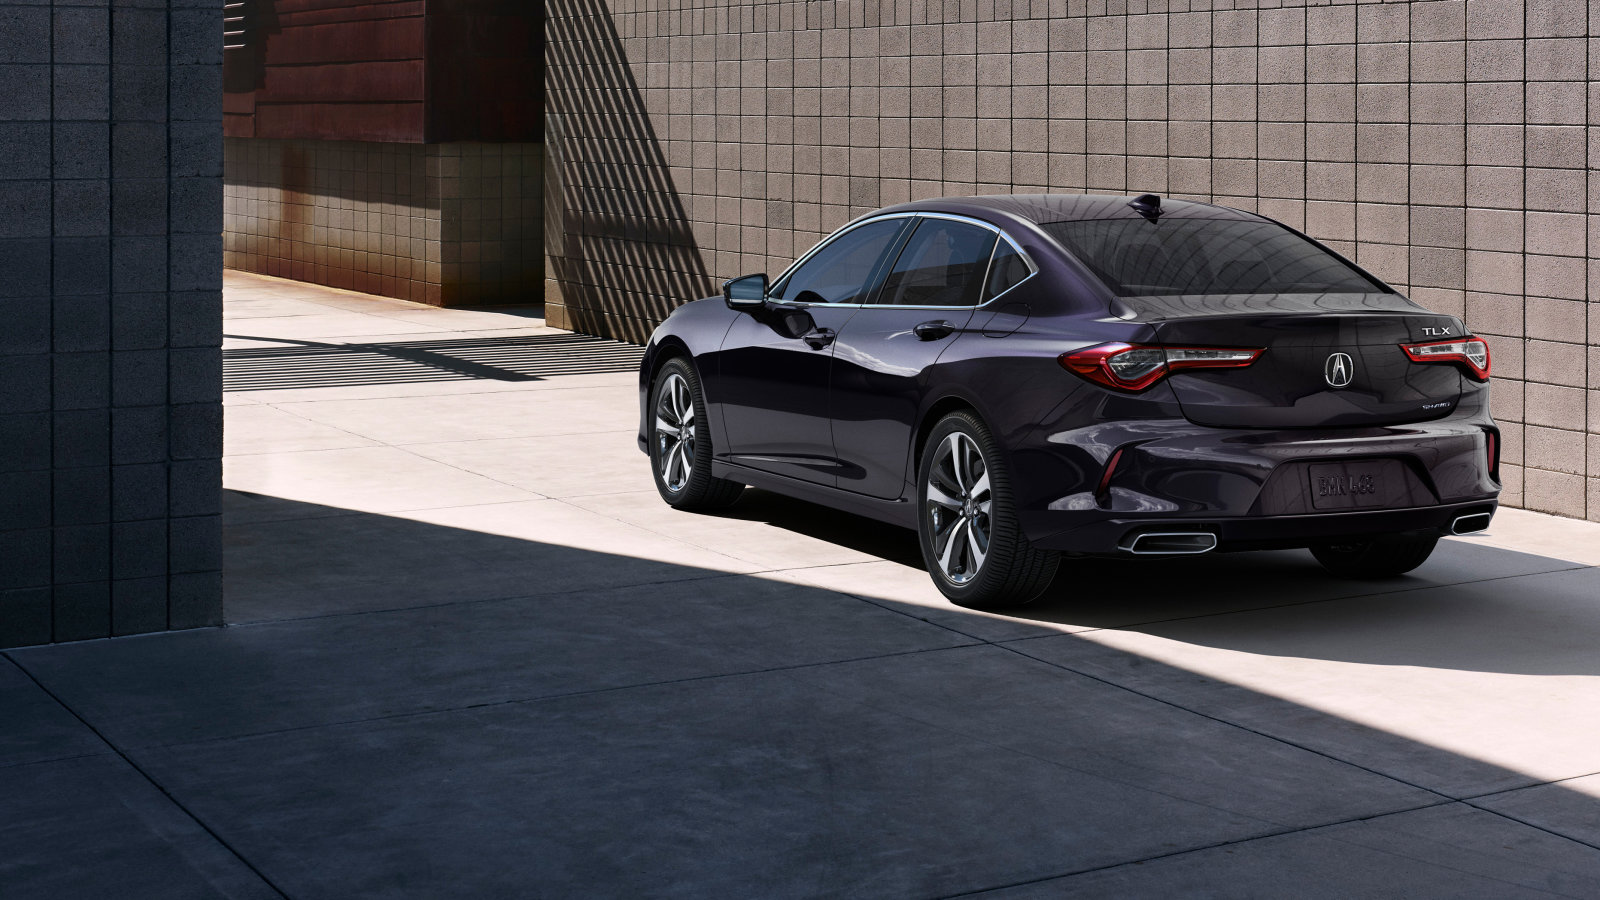 2021 Acura TLX car valued from $38,525; Kind S due following springtime